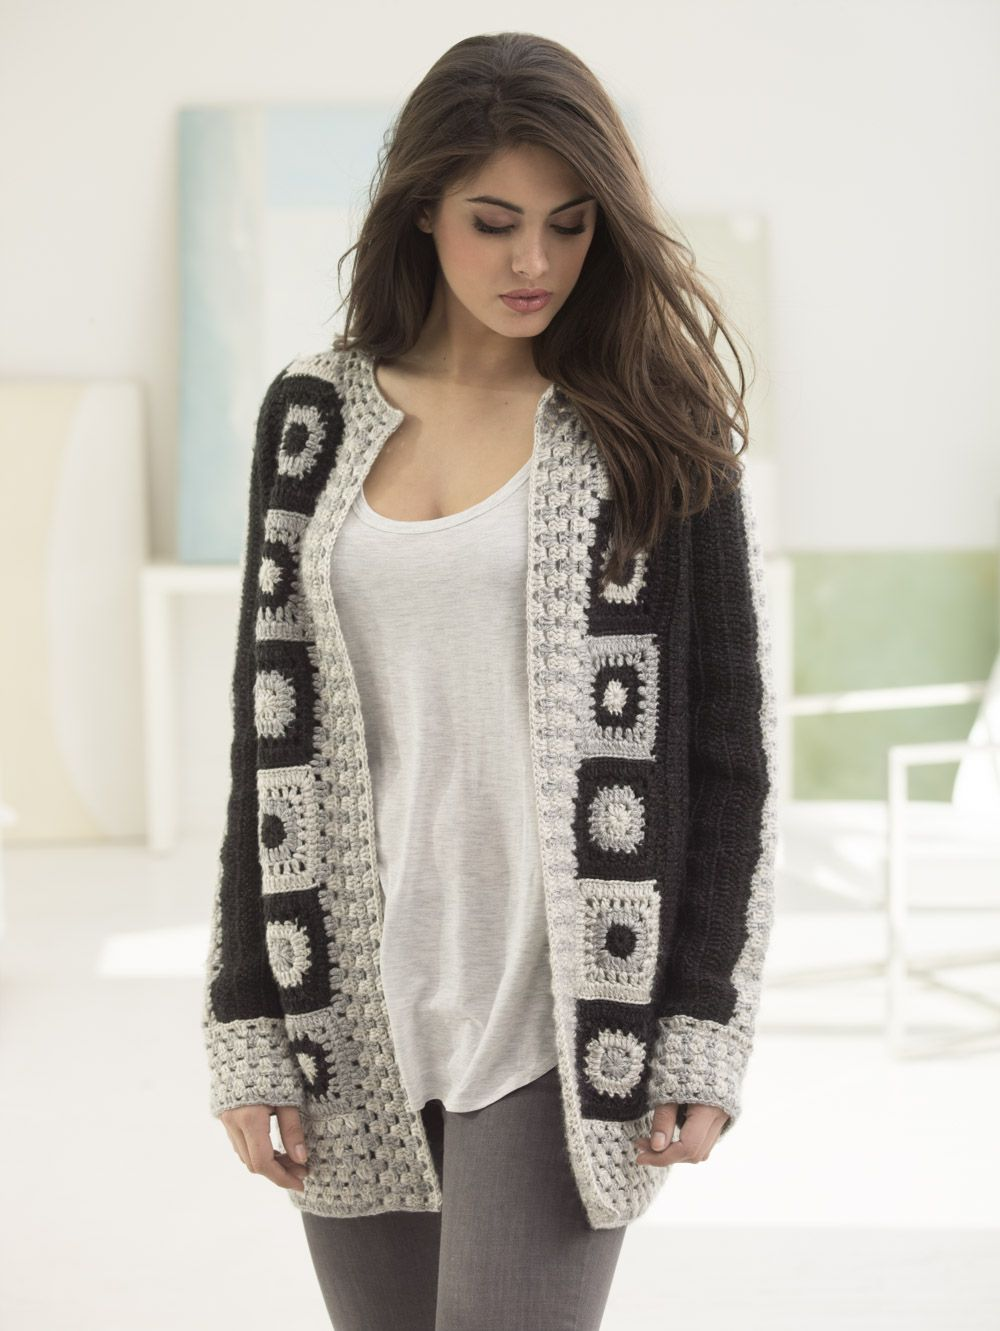 Make this trendy granny square statement cardigan with Lion Brand Heartland! Free crochet pattern calls for 11 - 15 balls of yarn (pictured in black canyon, mount rainier, and katmail) and a size I-9 crochet hook.